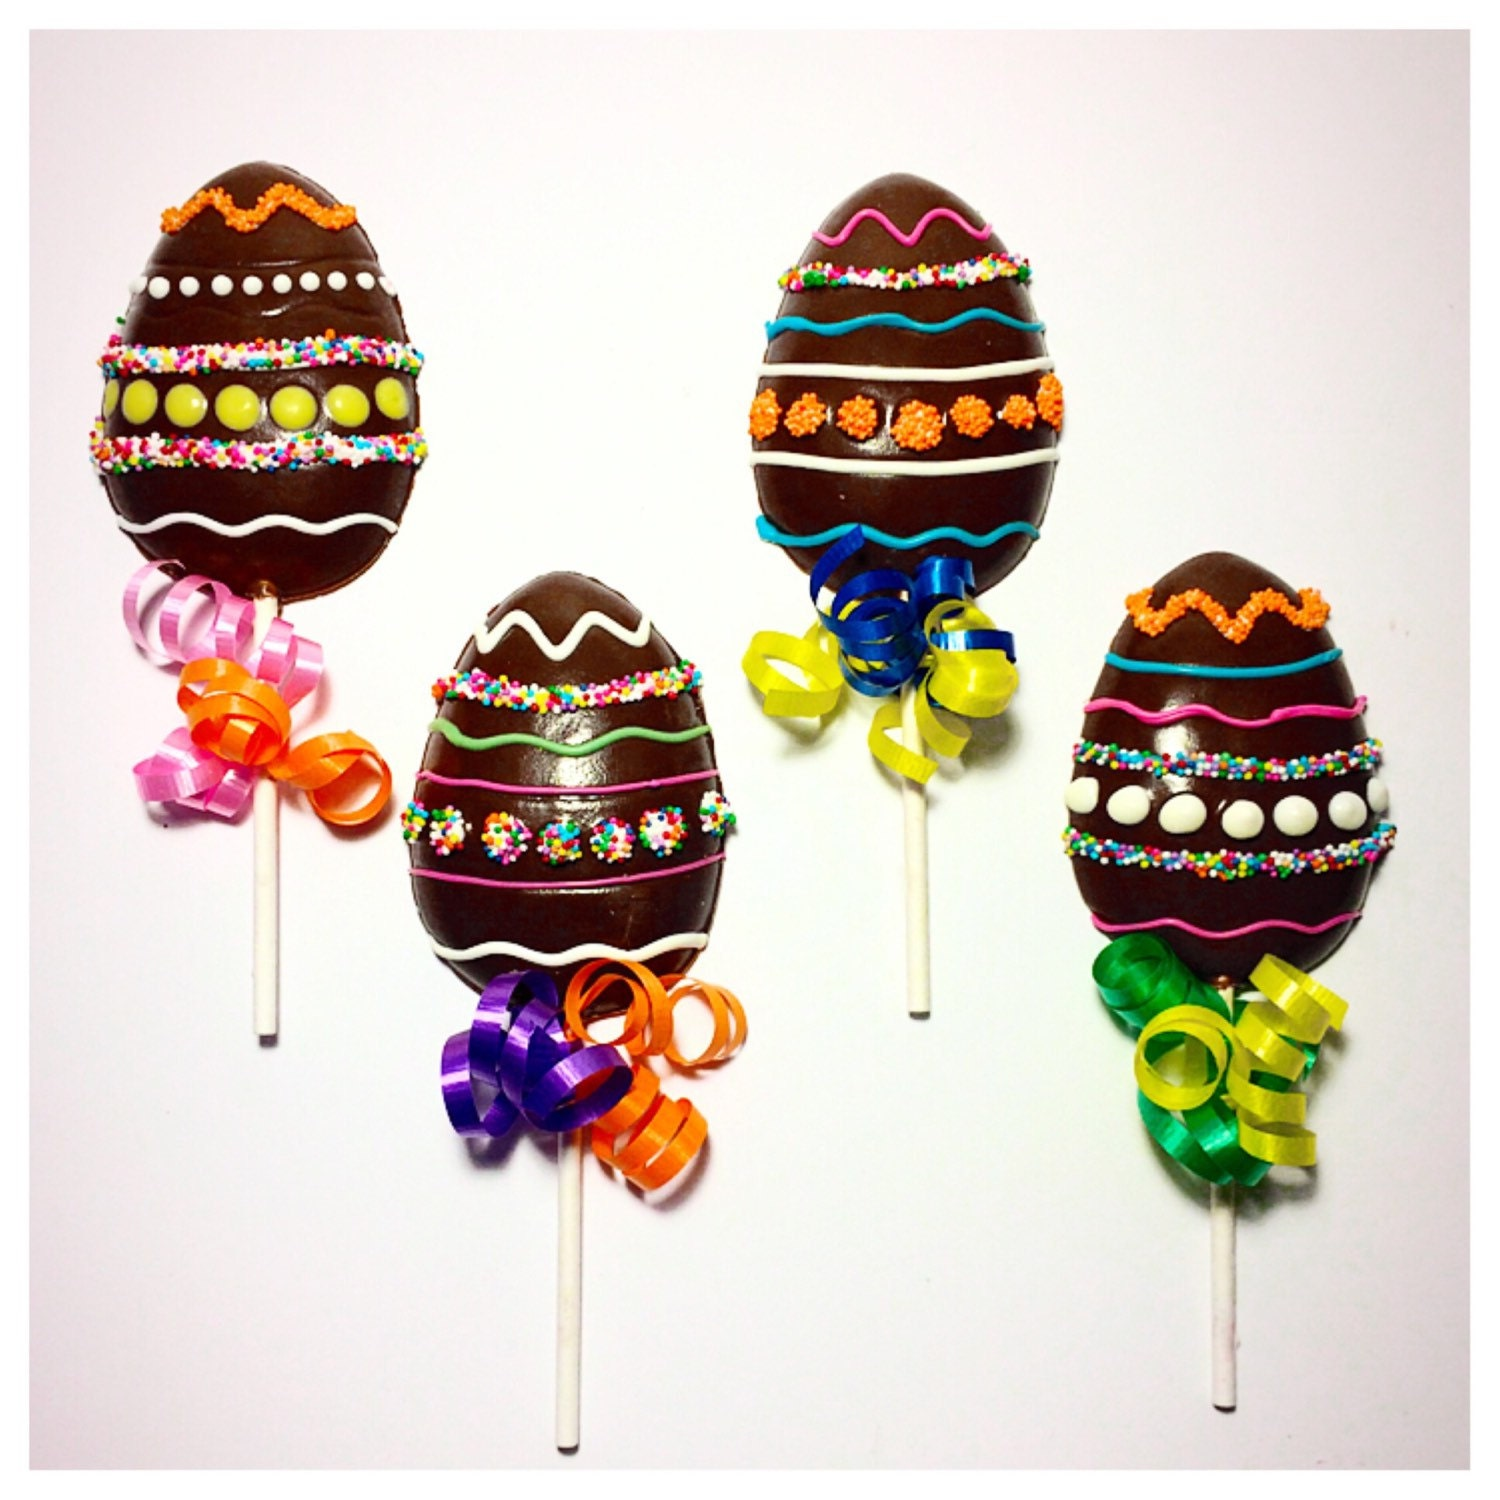 Decorated Easter Egg Belgian Chocolate Lollipops